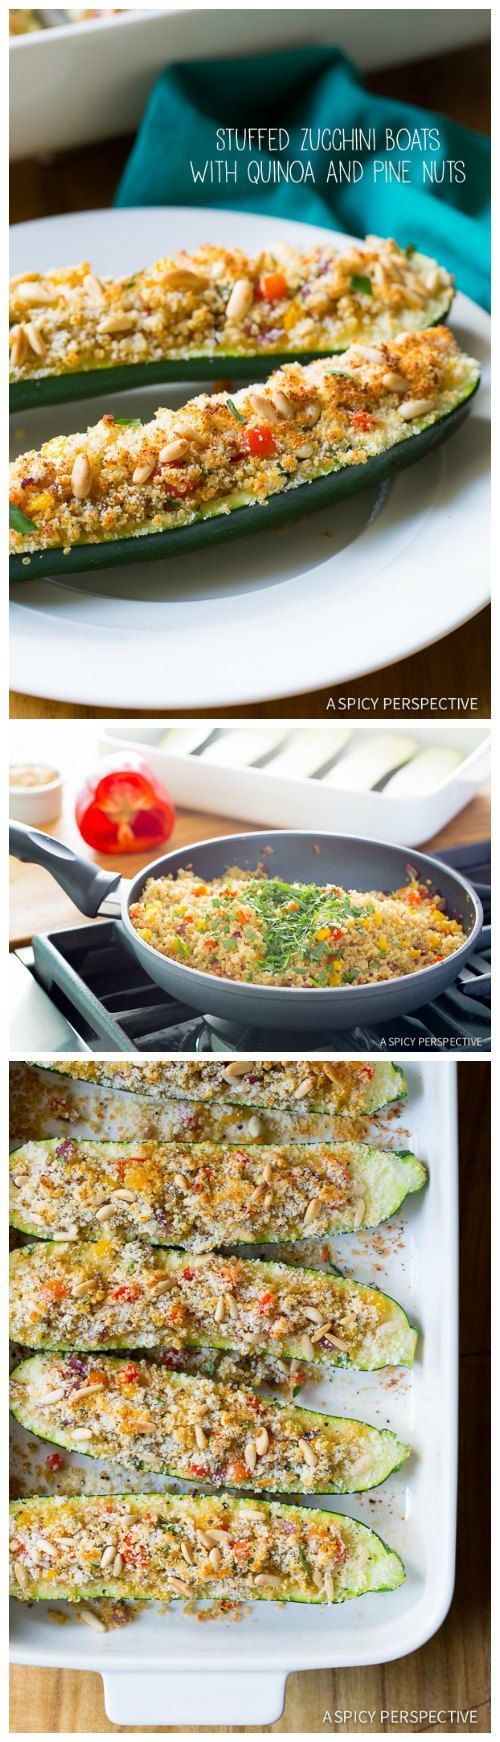 Light and Perky Stuffed Zucchini Boats with Quinoa and Pine Nuts #healthy #vegetarian